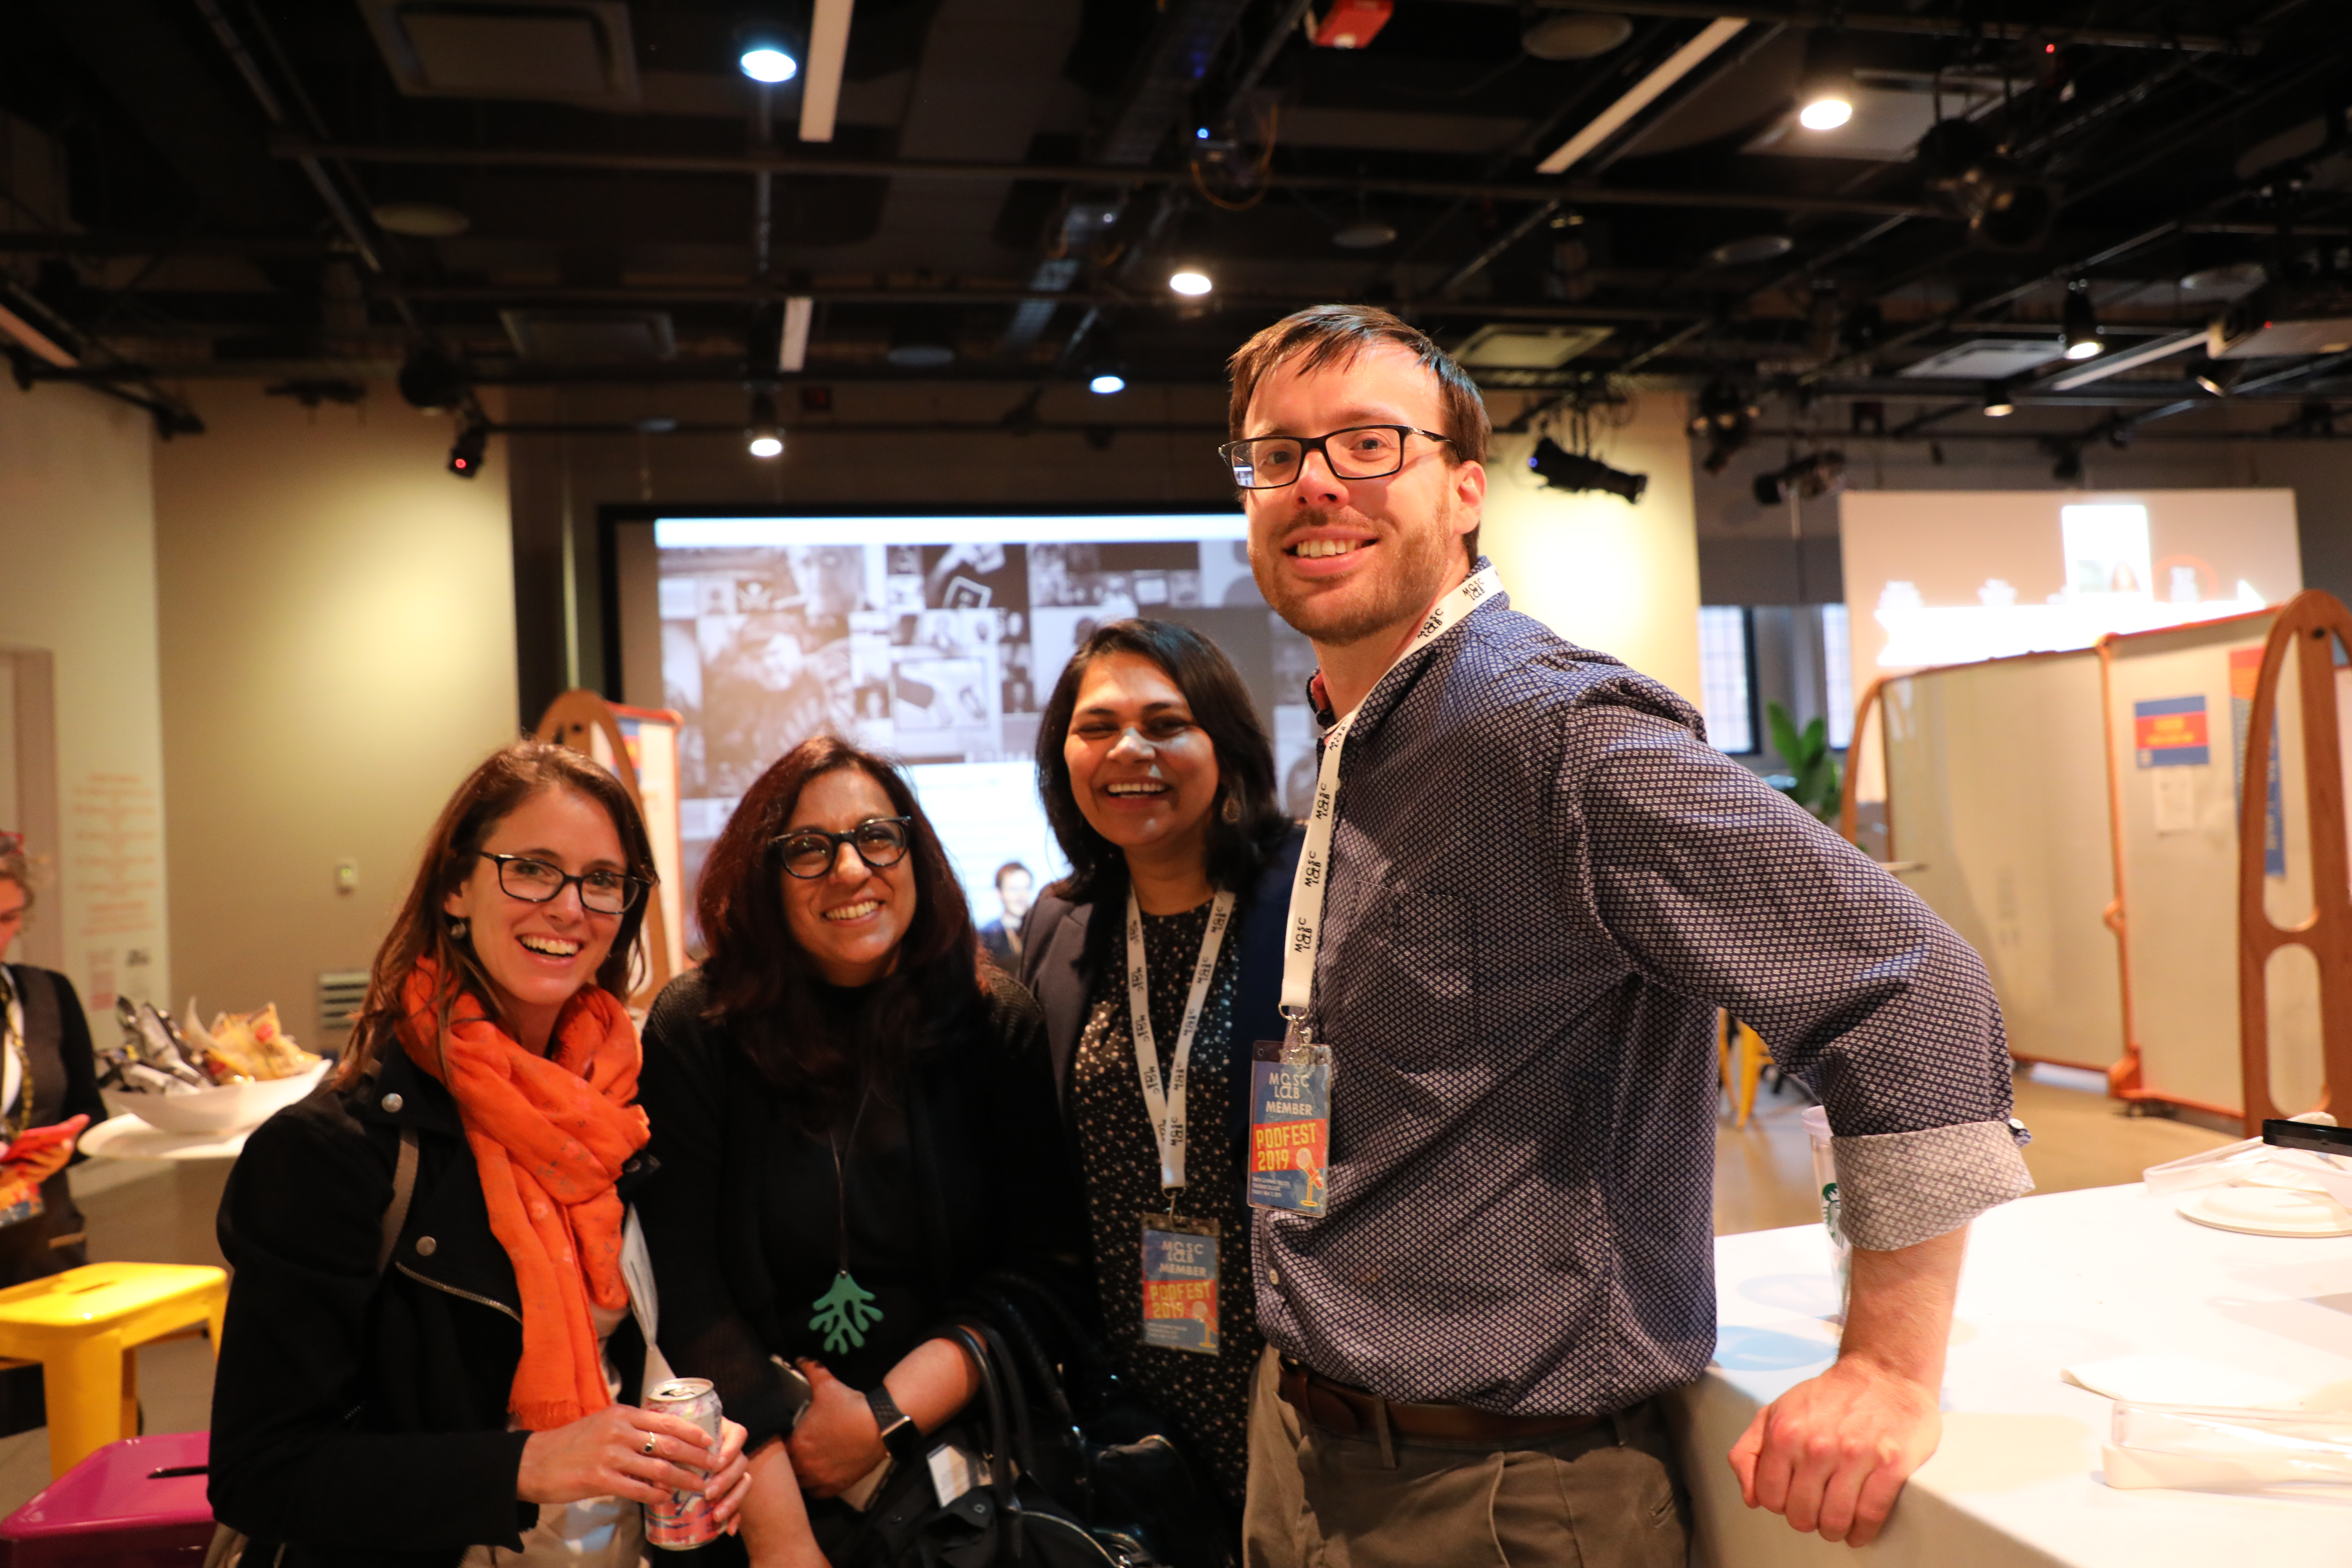 four people (joe, lalitha, ambreen and laura) standing and smiling at camera with sceen projecting in background in exhibit space (smith learning theater)